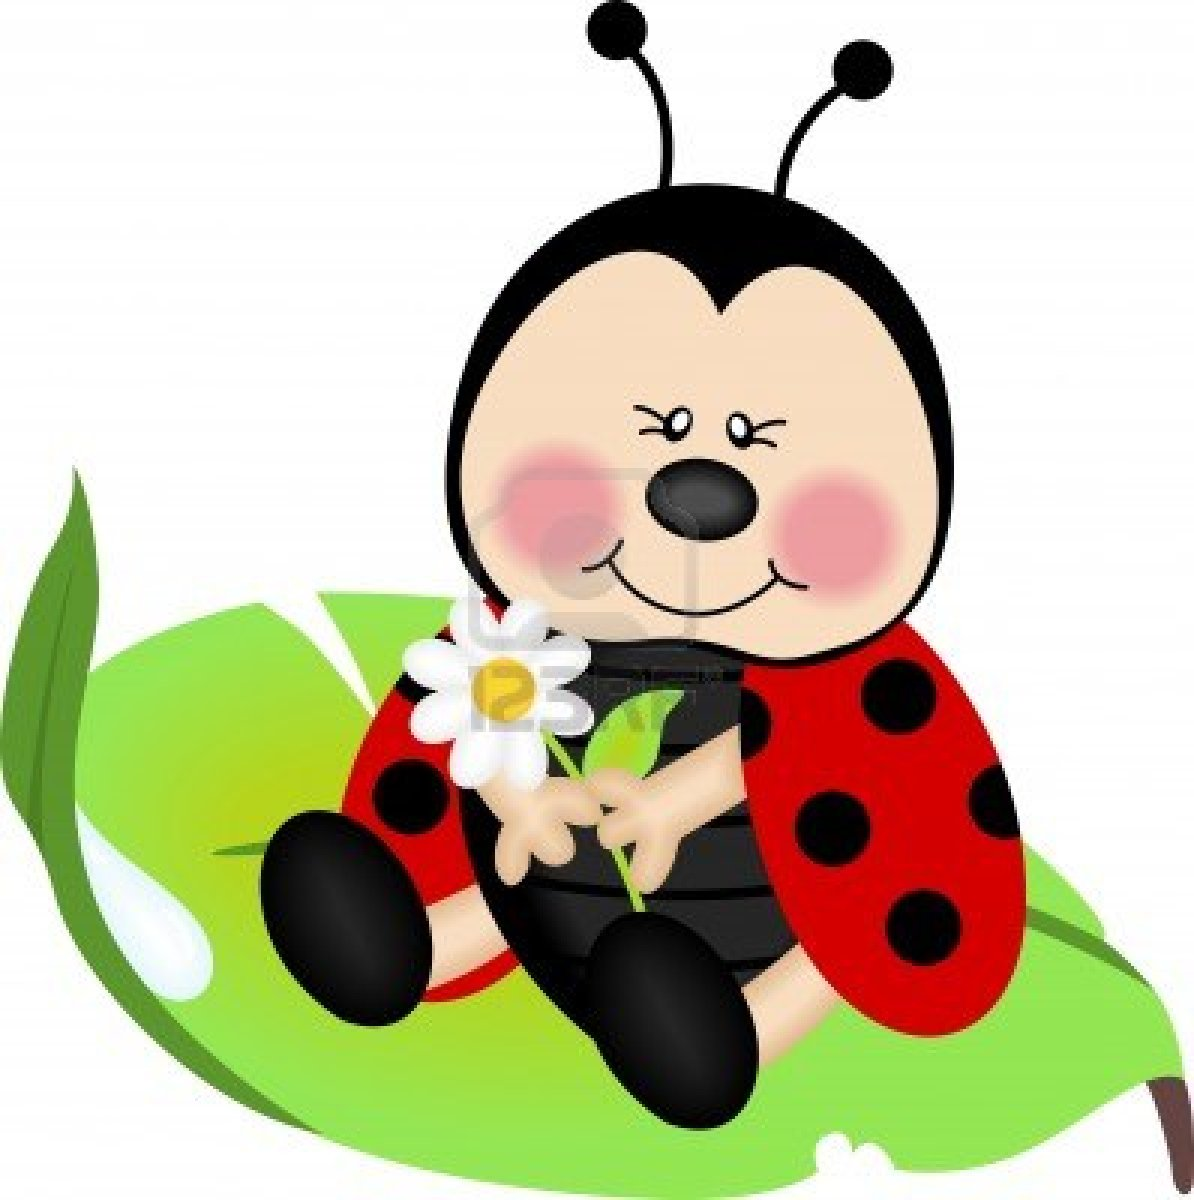 Lady Beetle clipart cute thing Classic bug Clip Personalize Jr